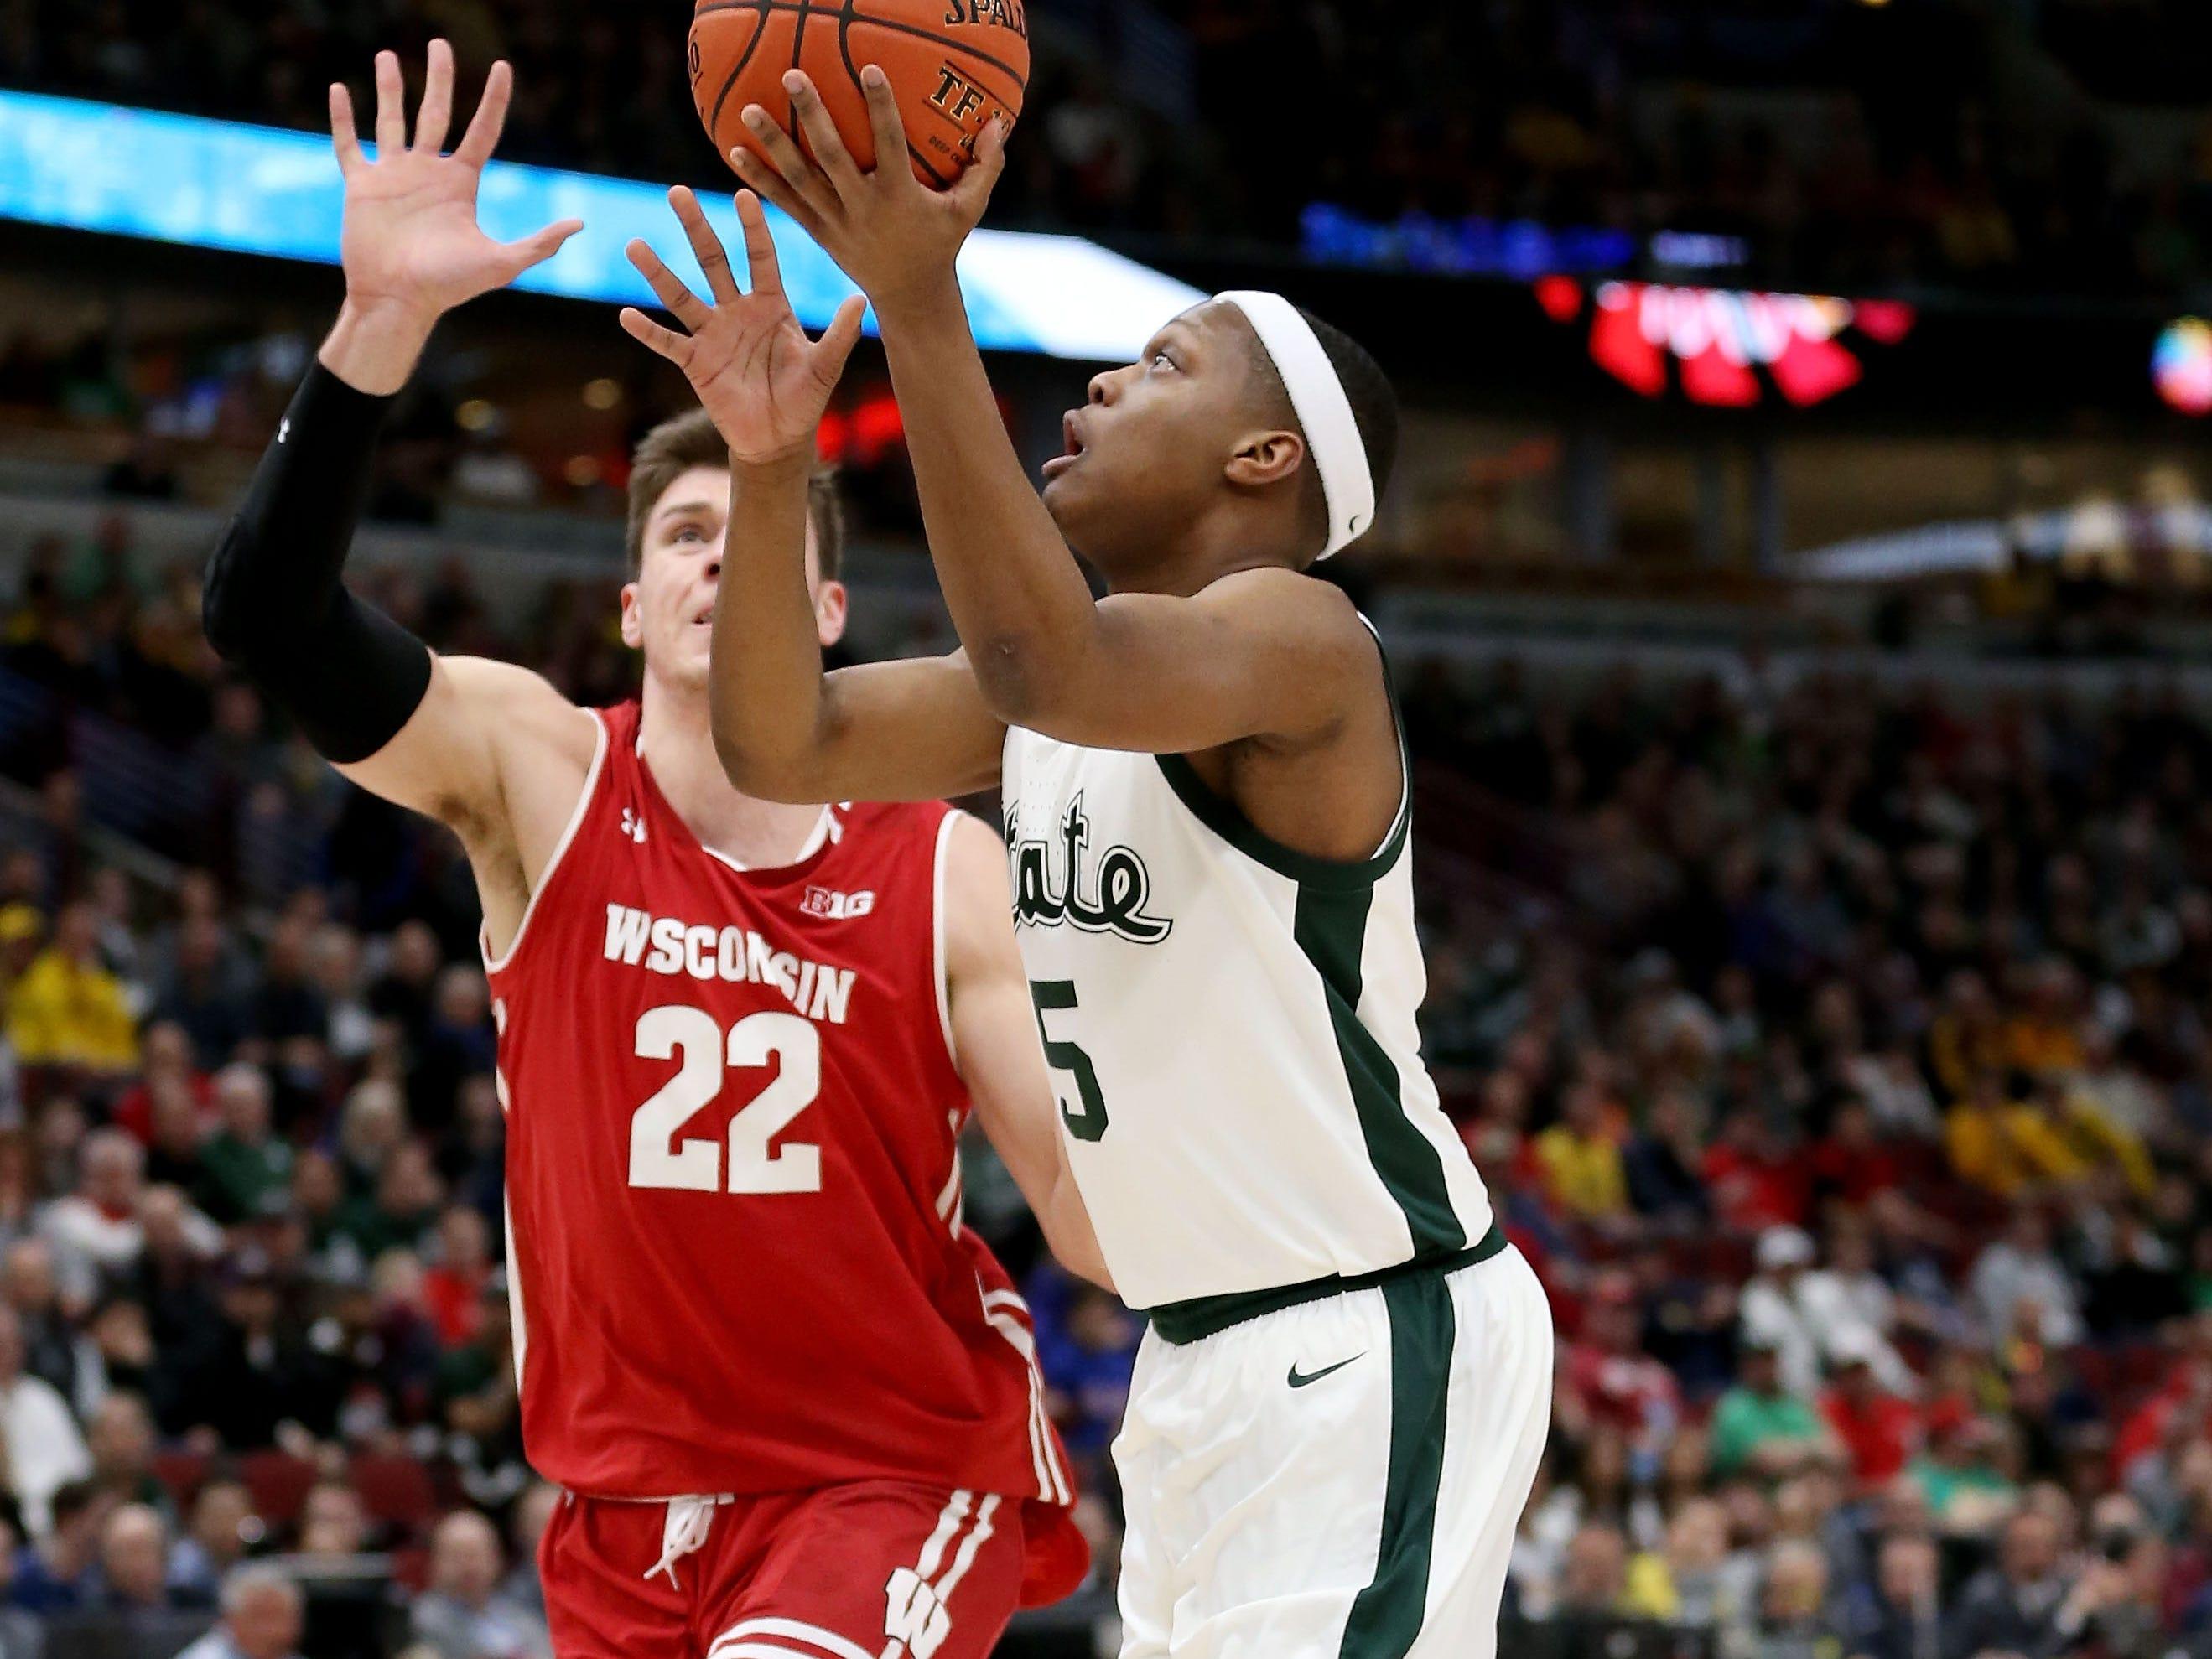 Cassius Winston #5 of the Michigan State Spartans attempts a shot while being guarded by Ethan Happ #22 of the Wisconsin Badgers in the first half during the semifinals of the Big Ten Basketball Tournament at the United Center on March 16, 2019 in Chicago, Illinois.